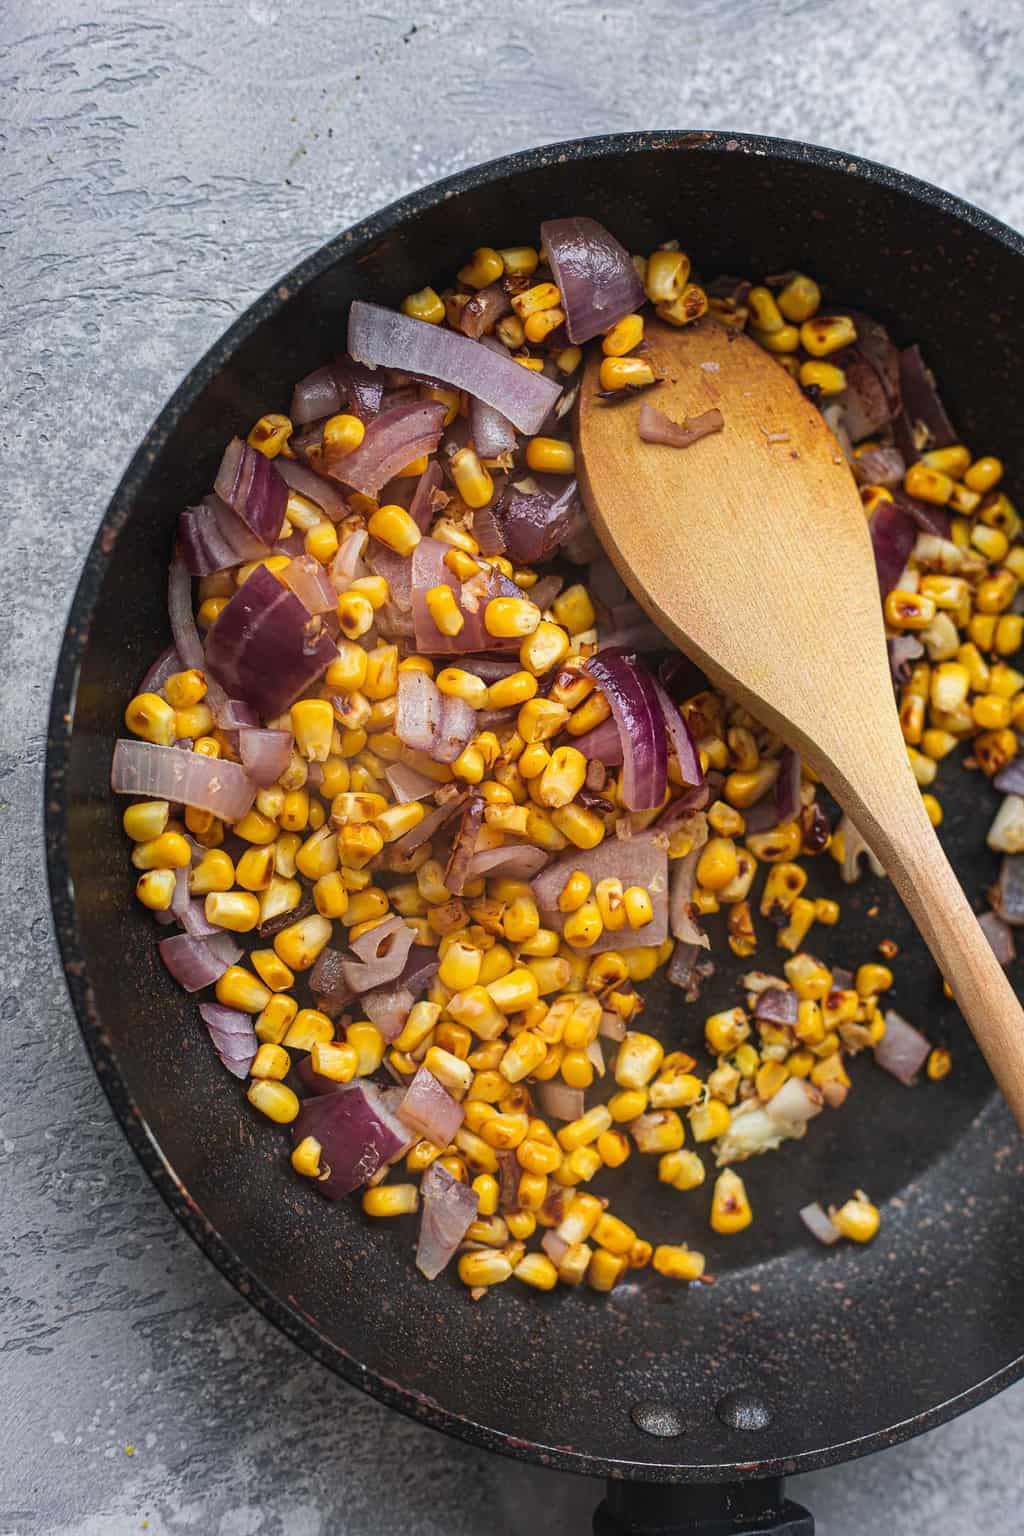 Sweetcorn and red onion in a saucepan